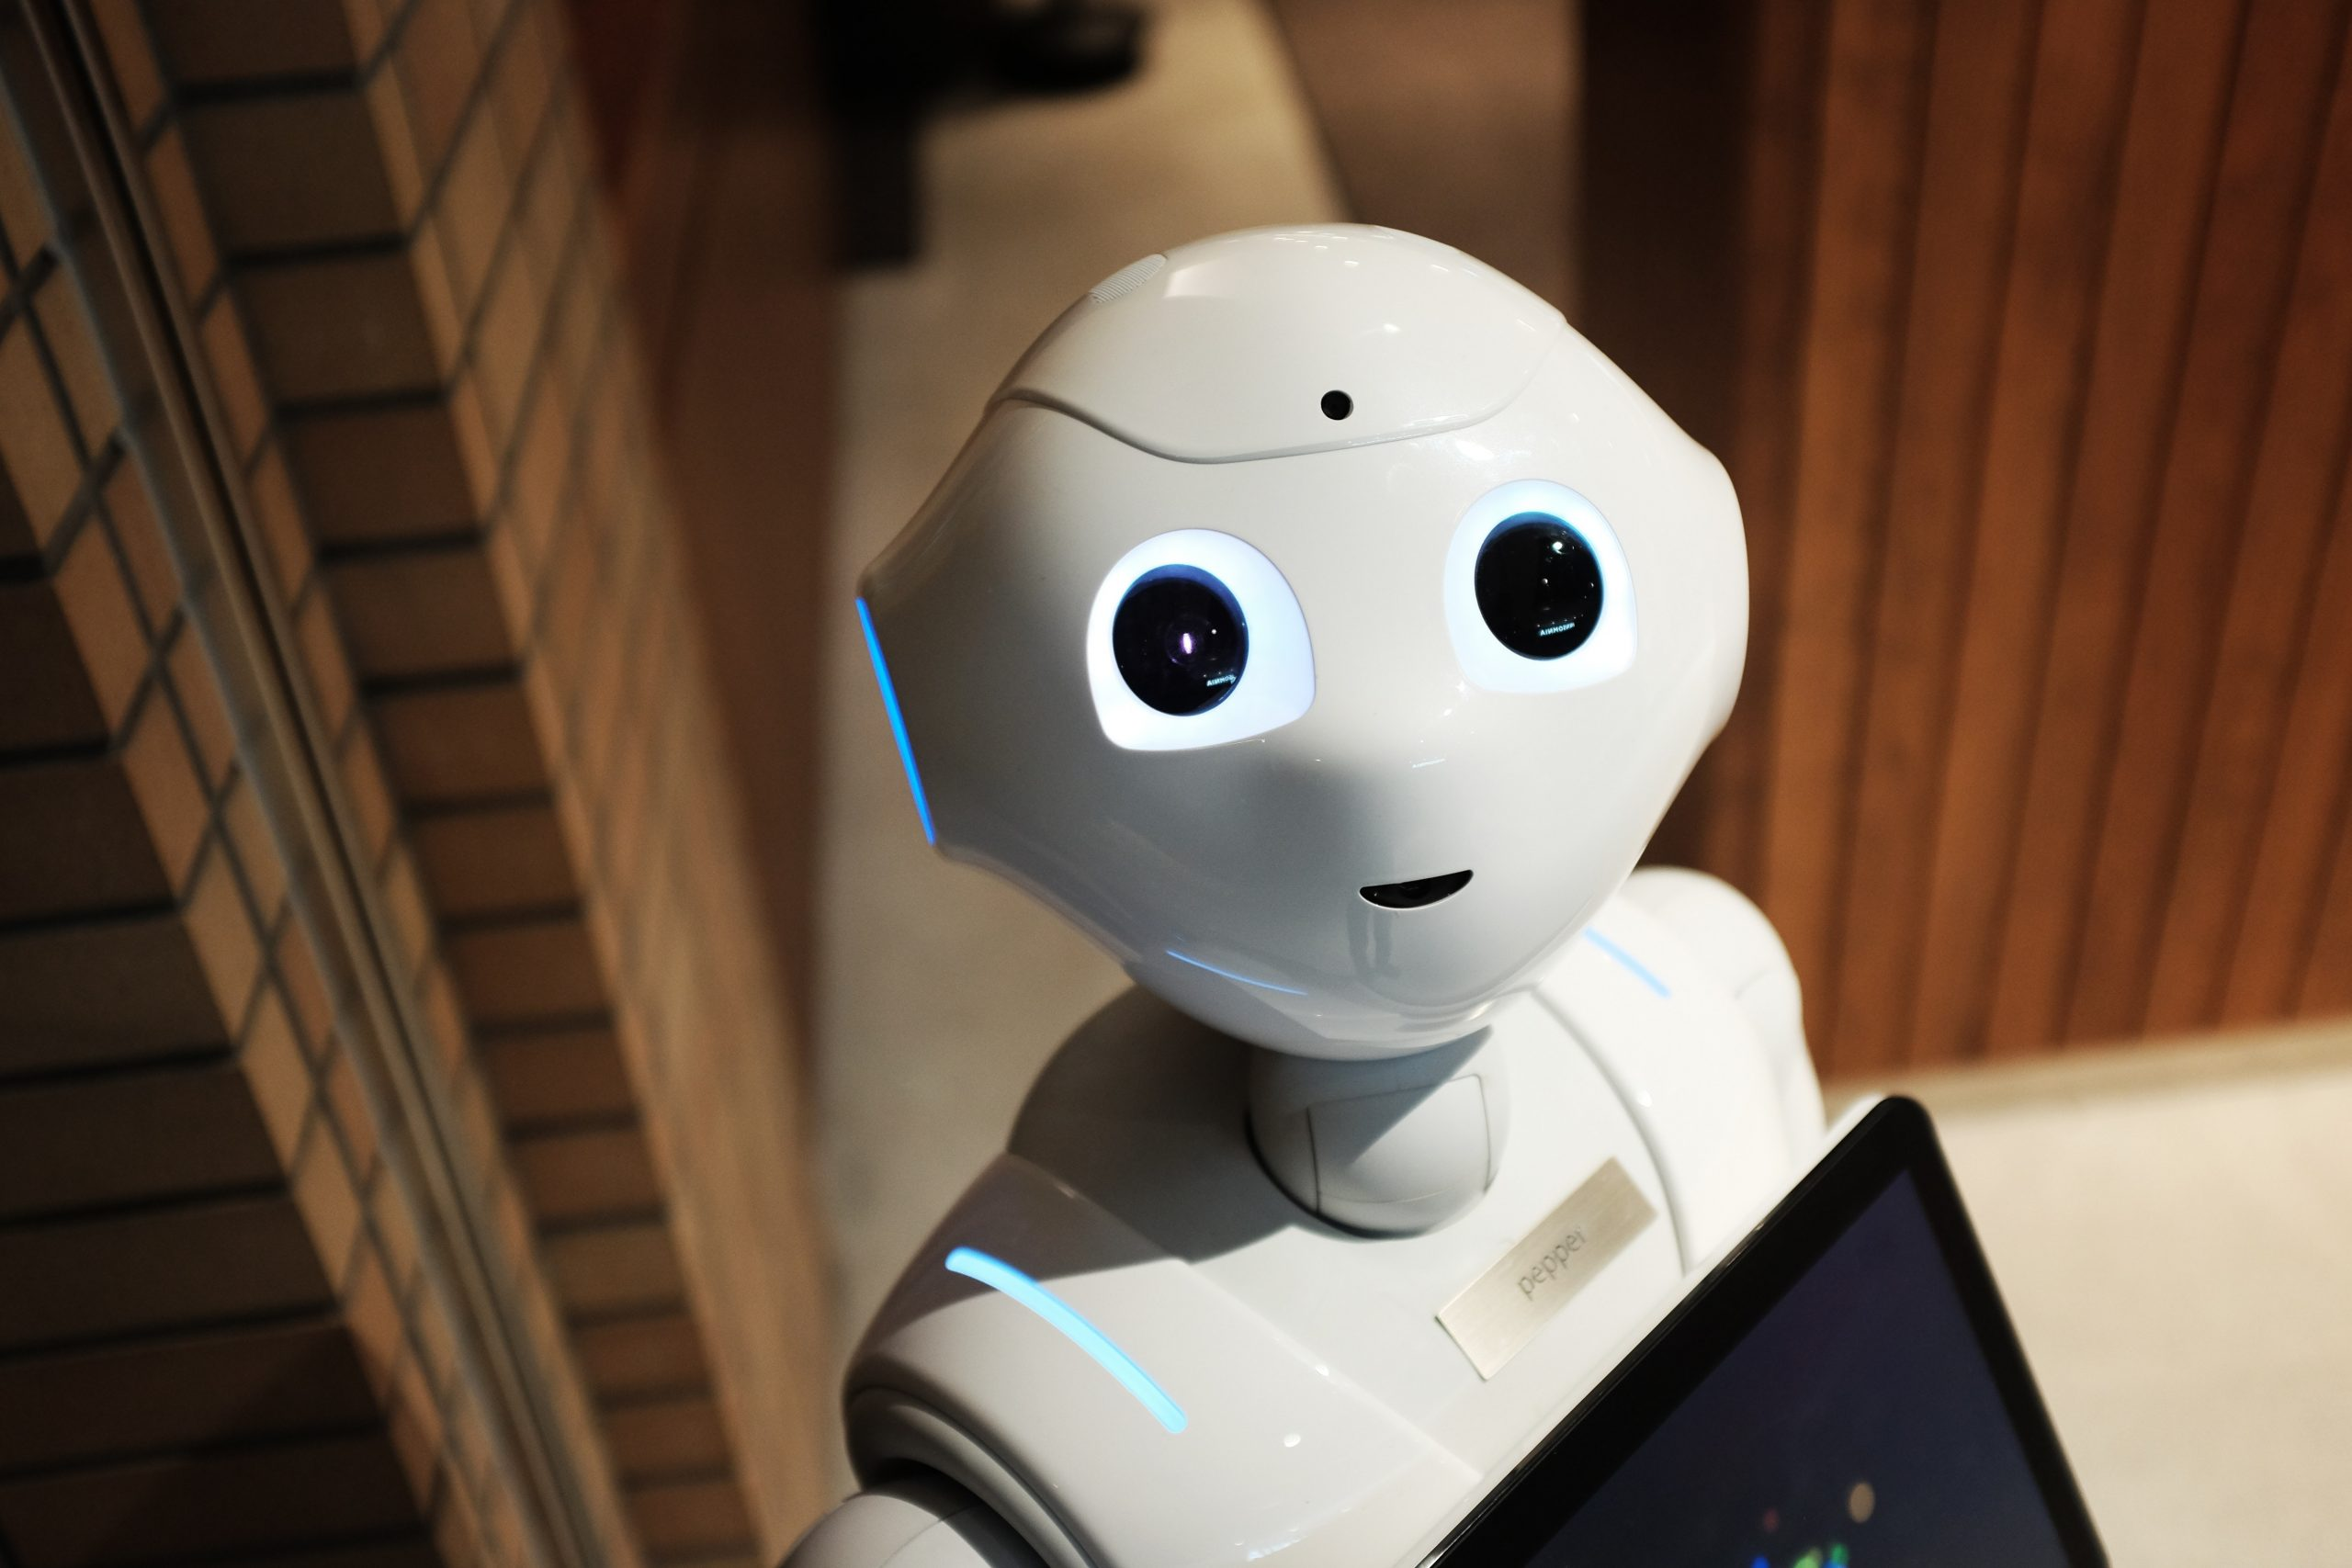 Do we need Lean when the robots arrive?